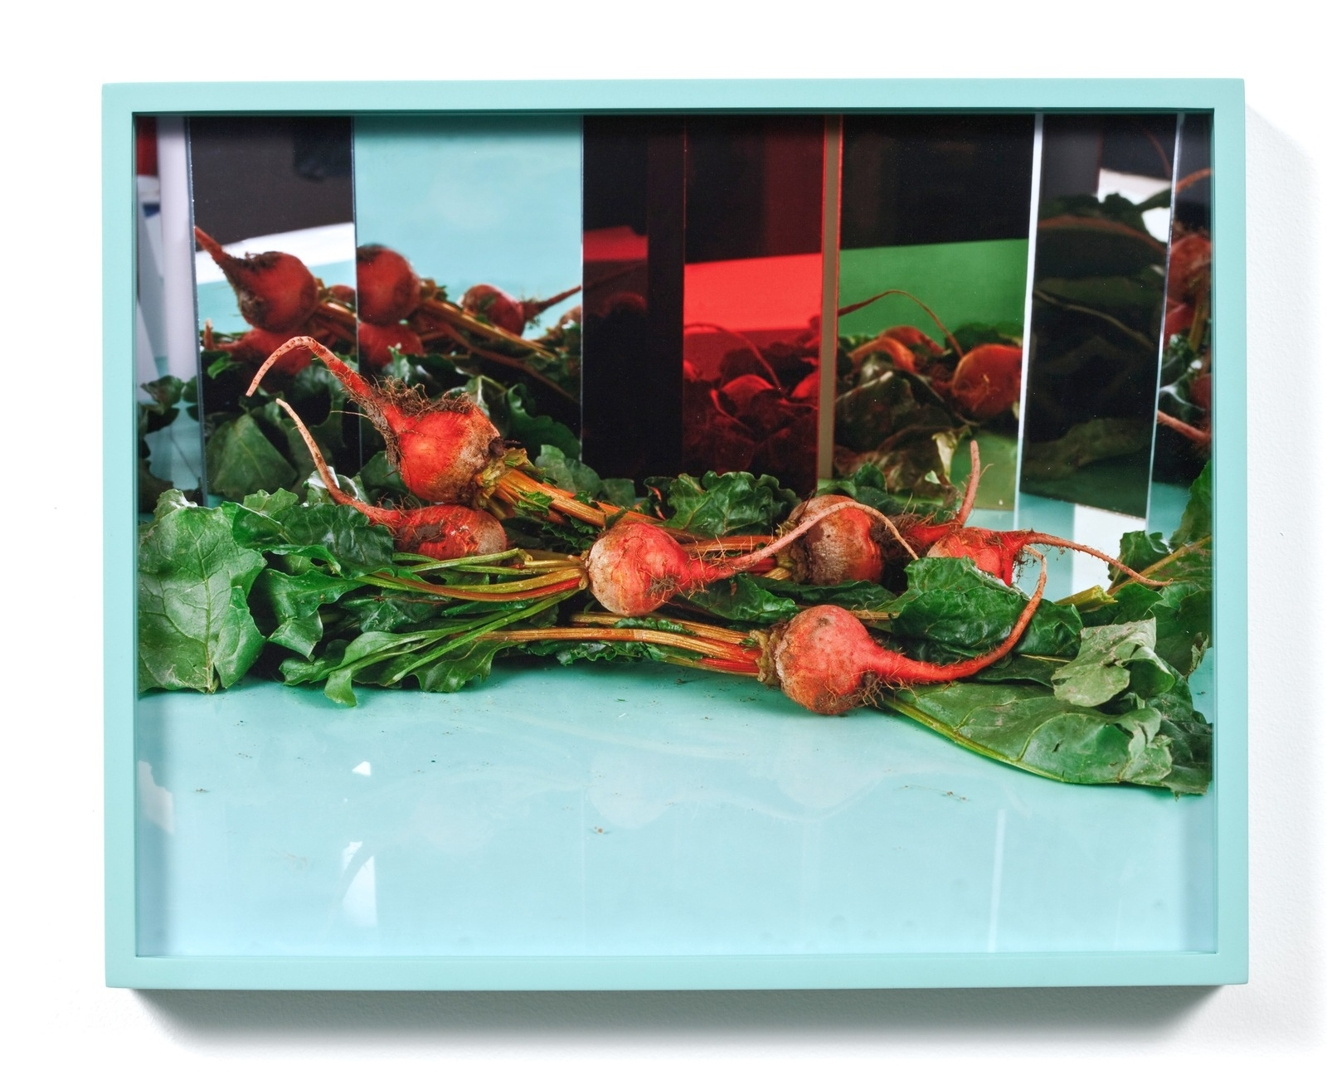 Beets. 2010 image